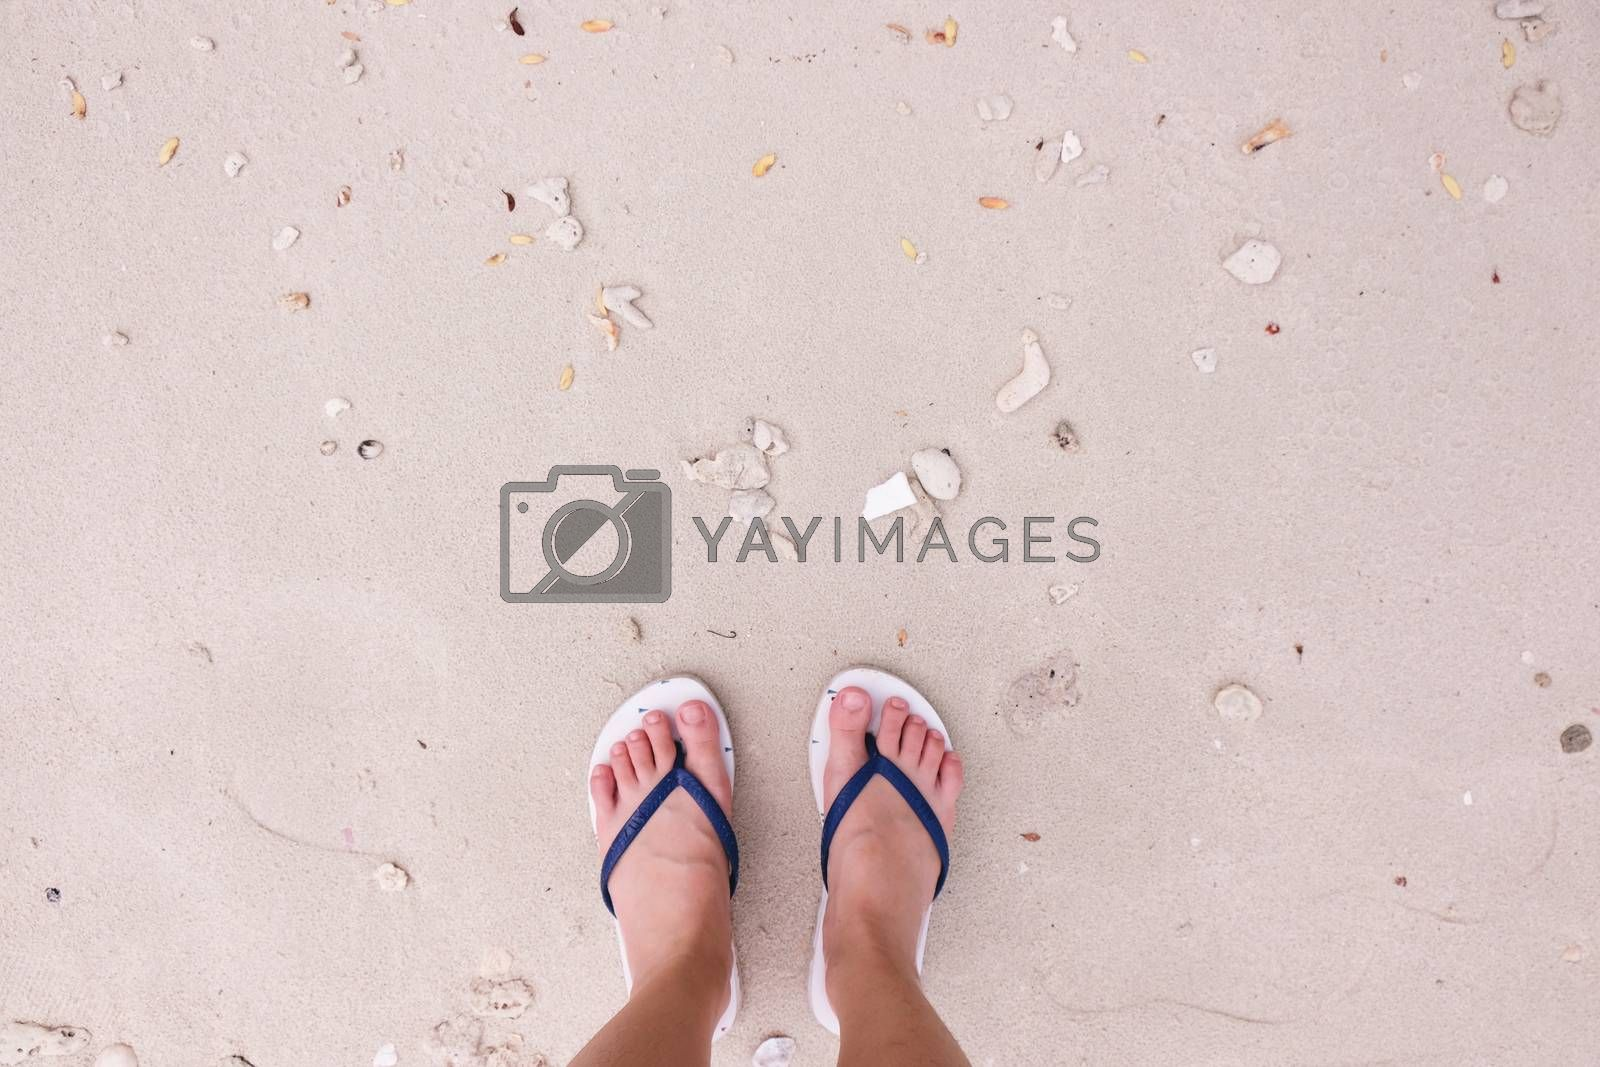 Selfie of feet in fashion sandals on sand beach background, top view with copy space